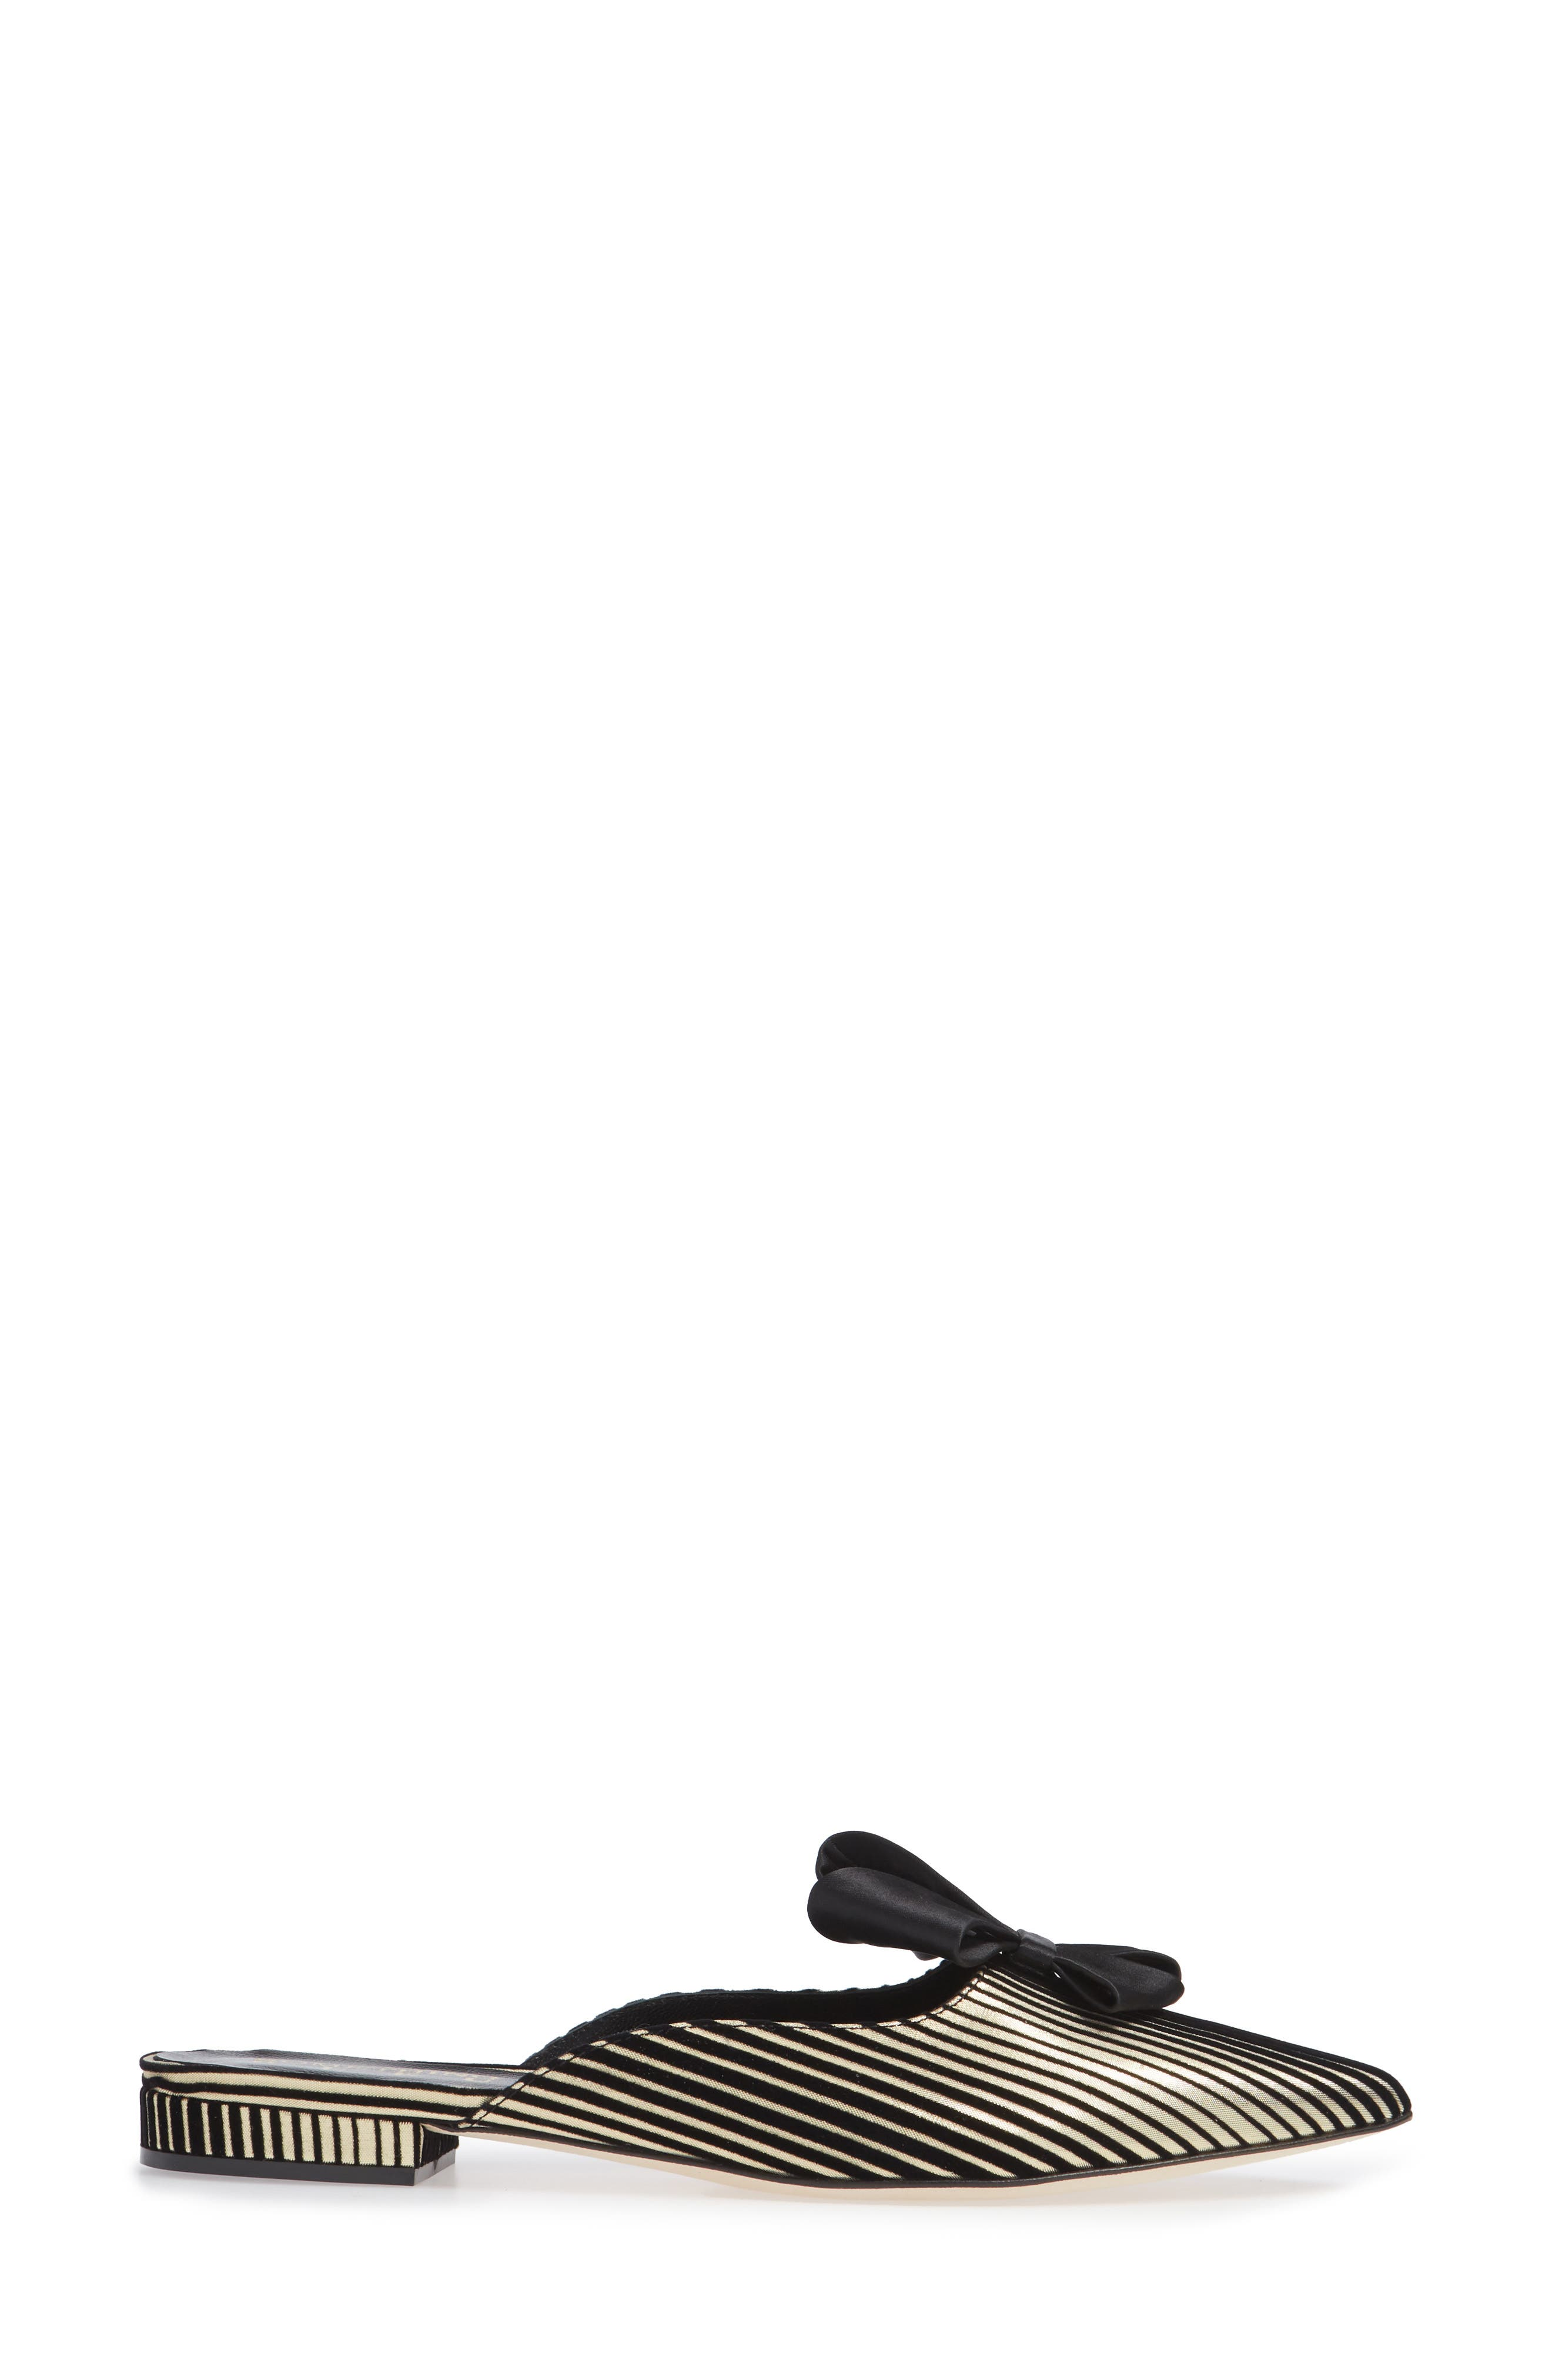 Prince Bow Loafer Mule,                             Alternate thumbnail 3, color,                             002